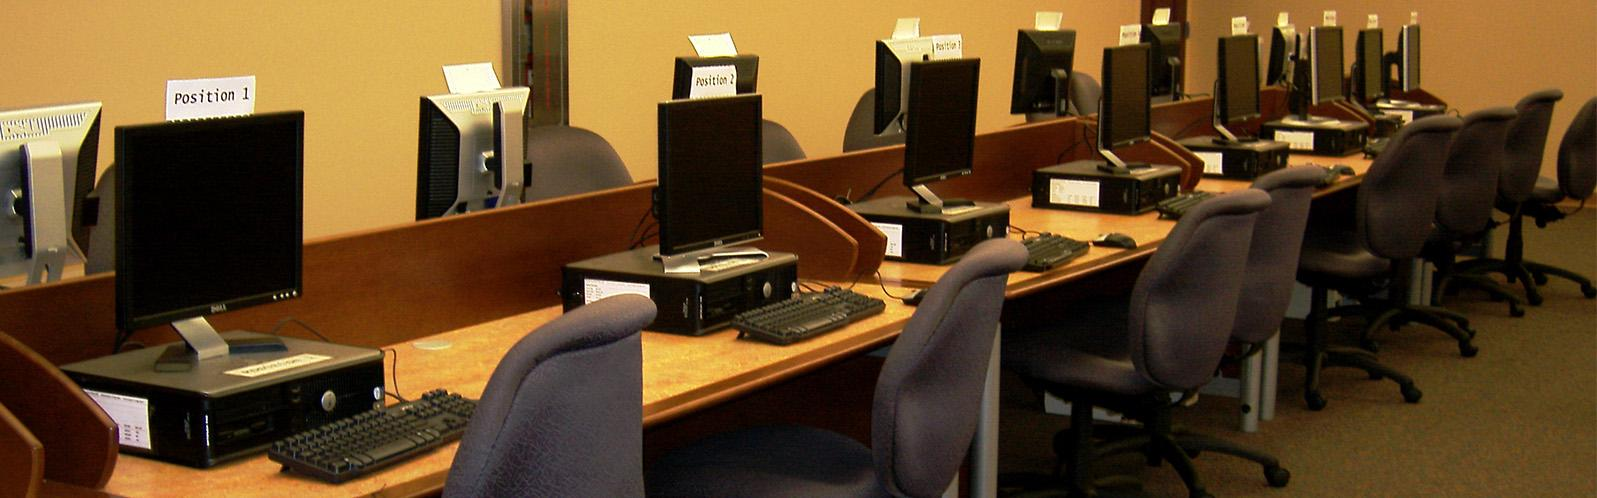 City Of Boynton Beach Parks And Recreation